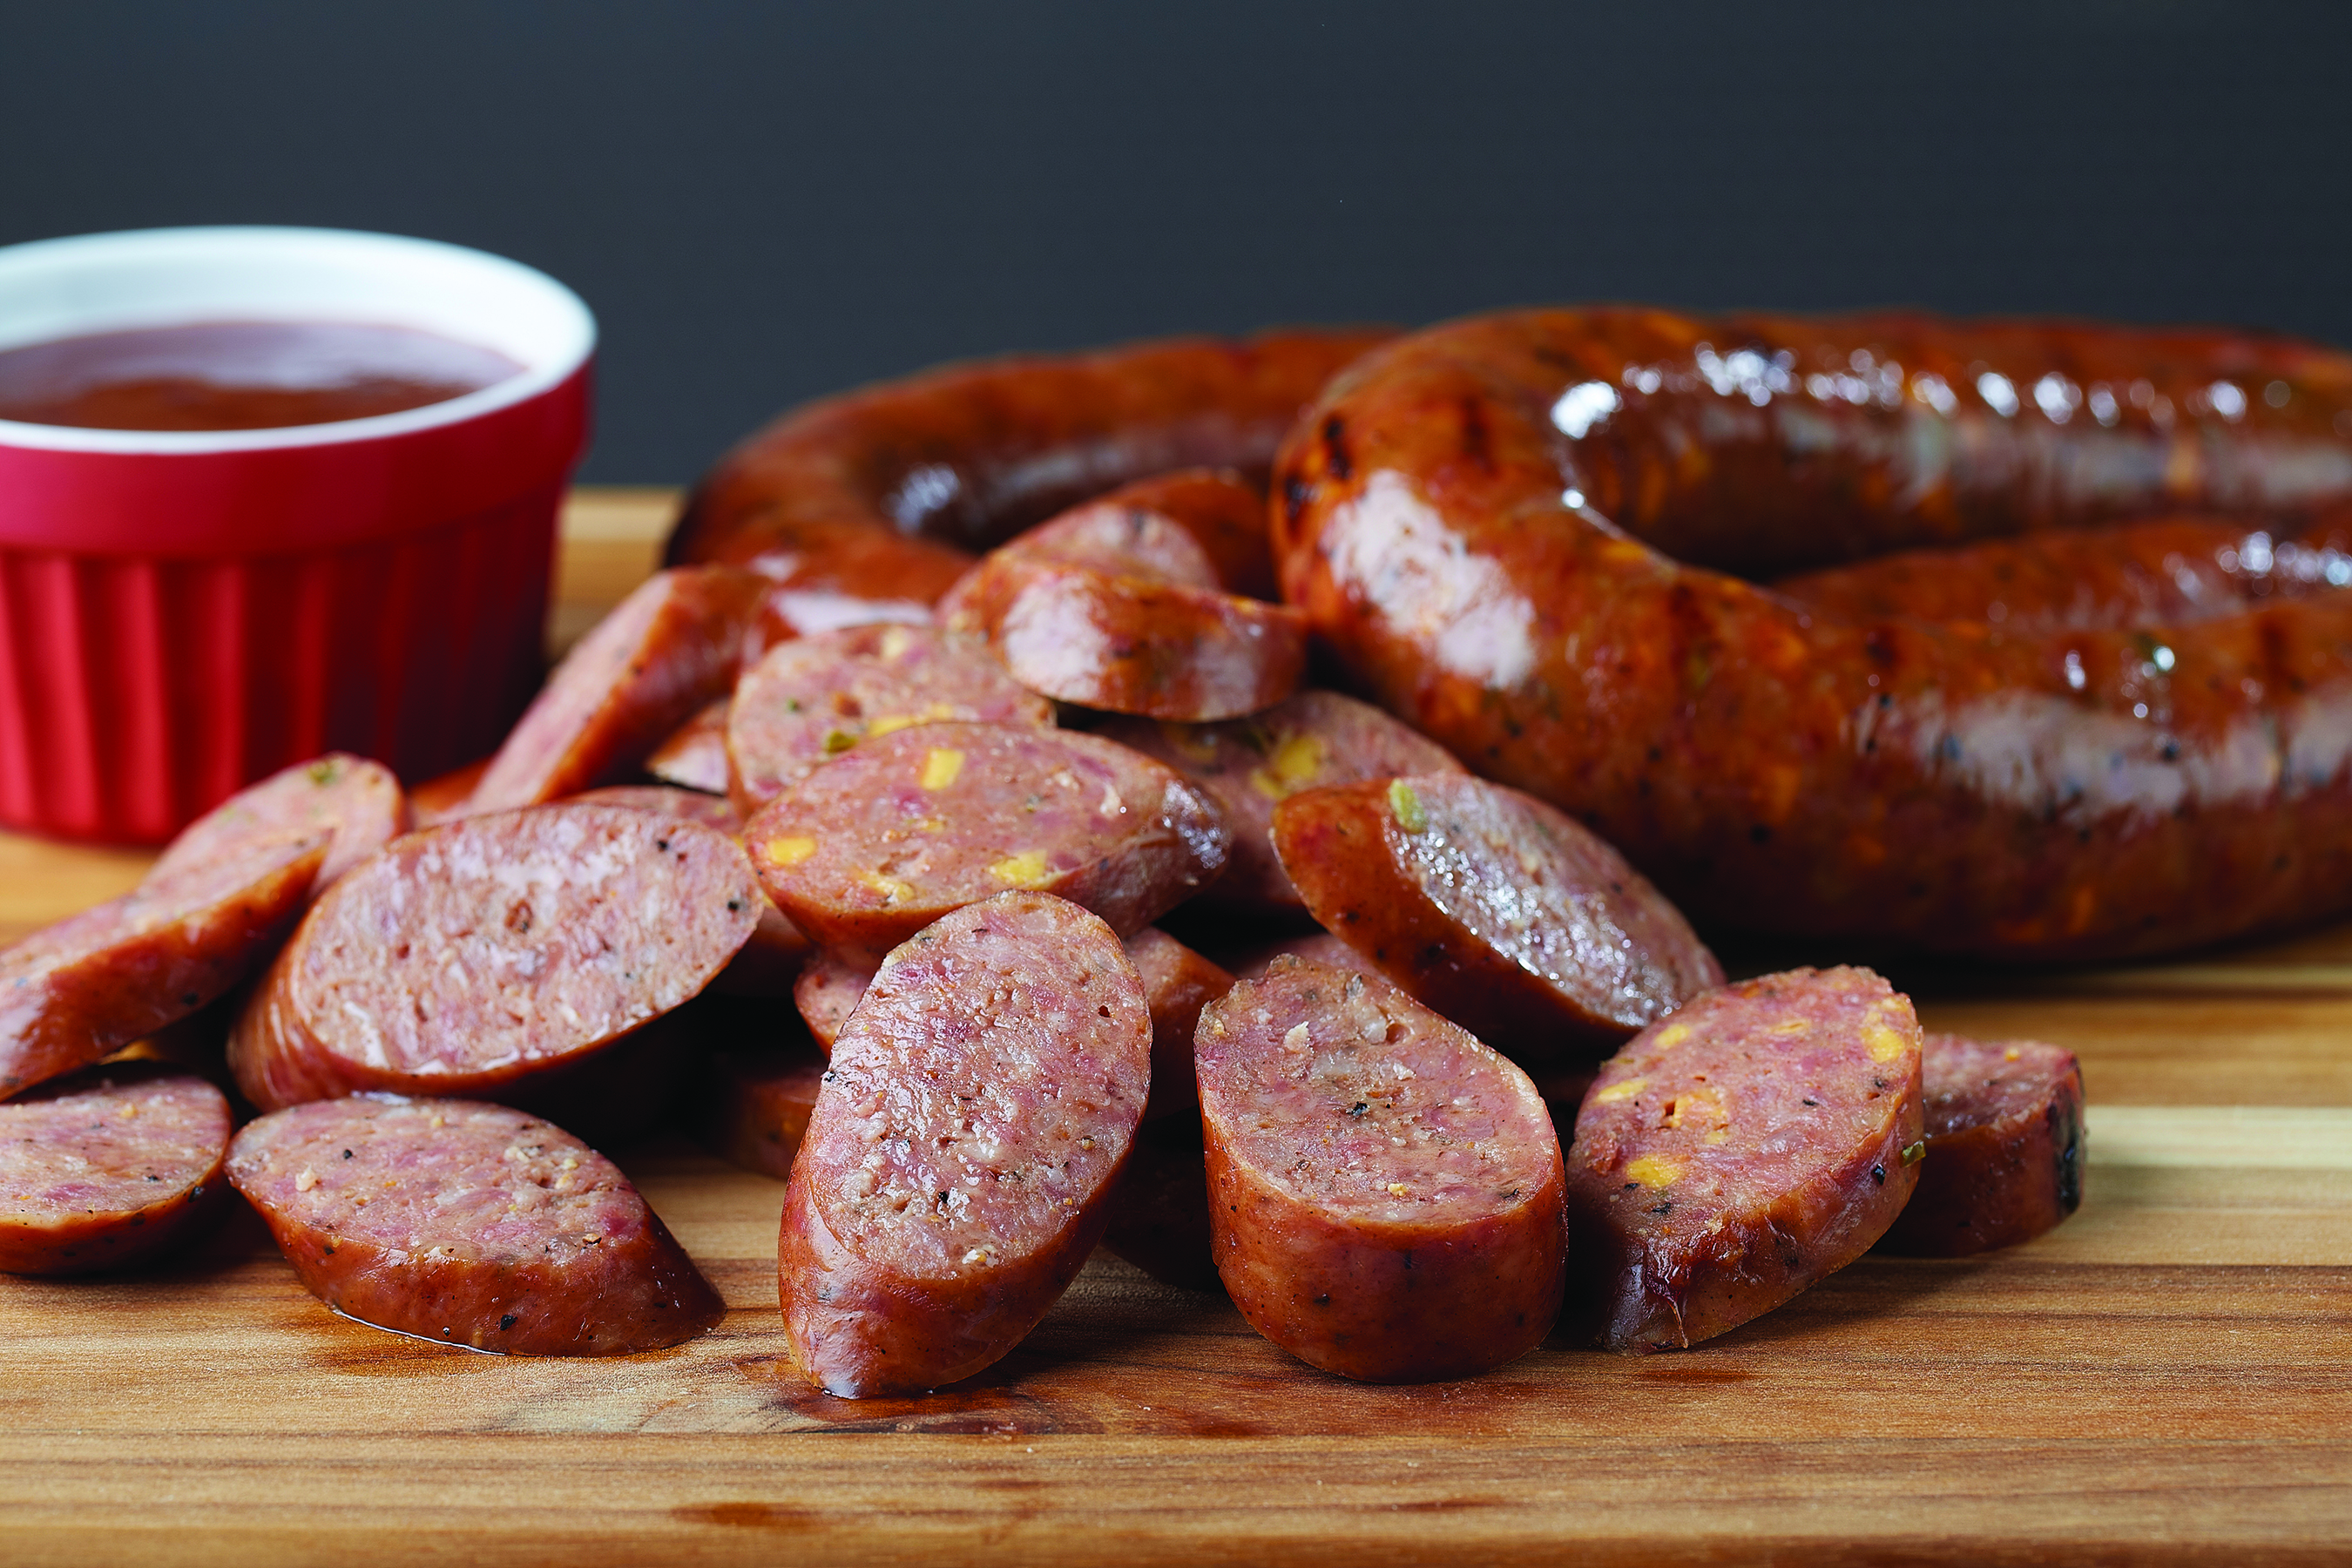 Smoked Sausages are hitting Safeway Shelves